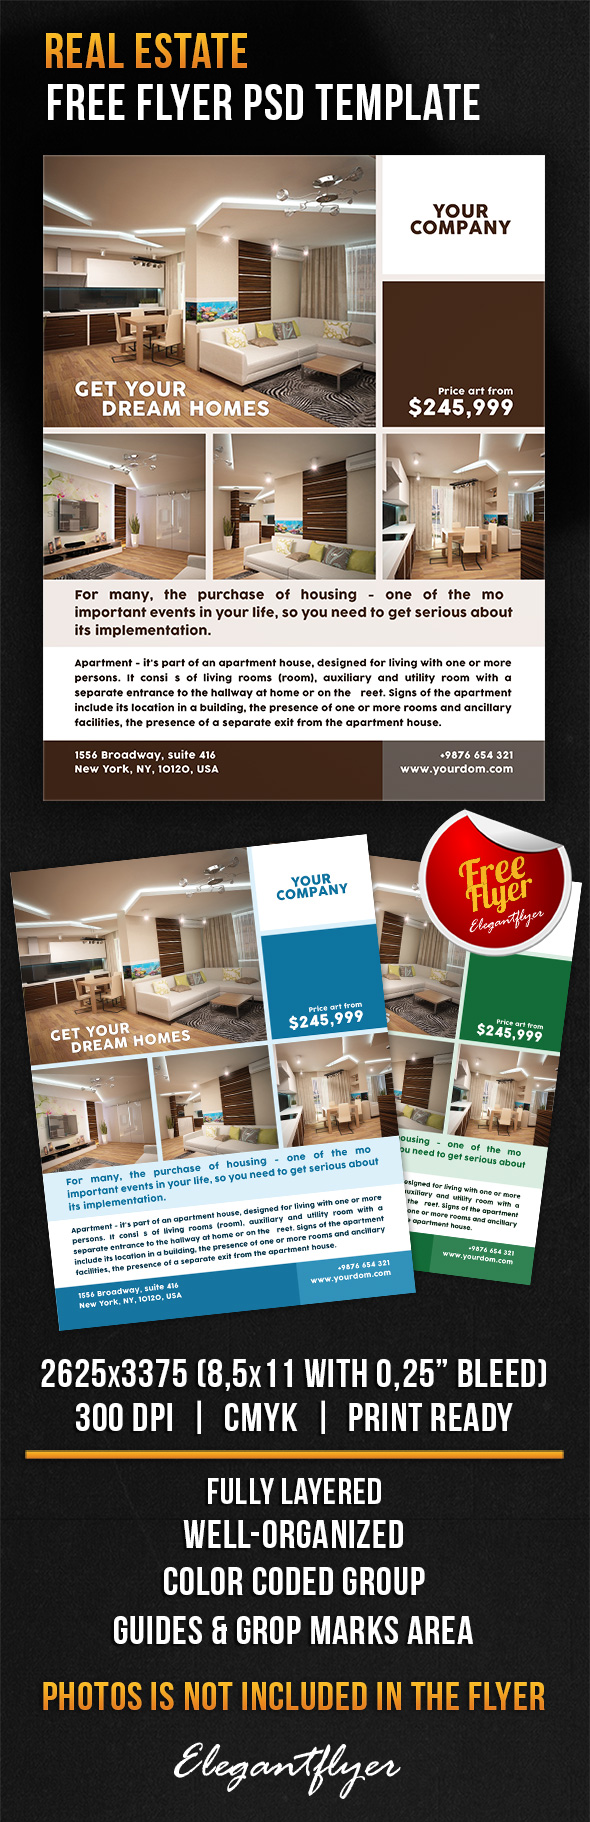 Real Estate  Free Flyer Psd Template HttpsWwwElegantflyerCom